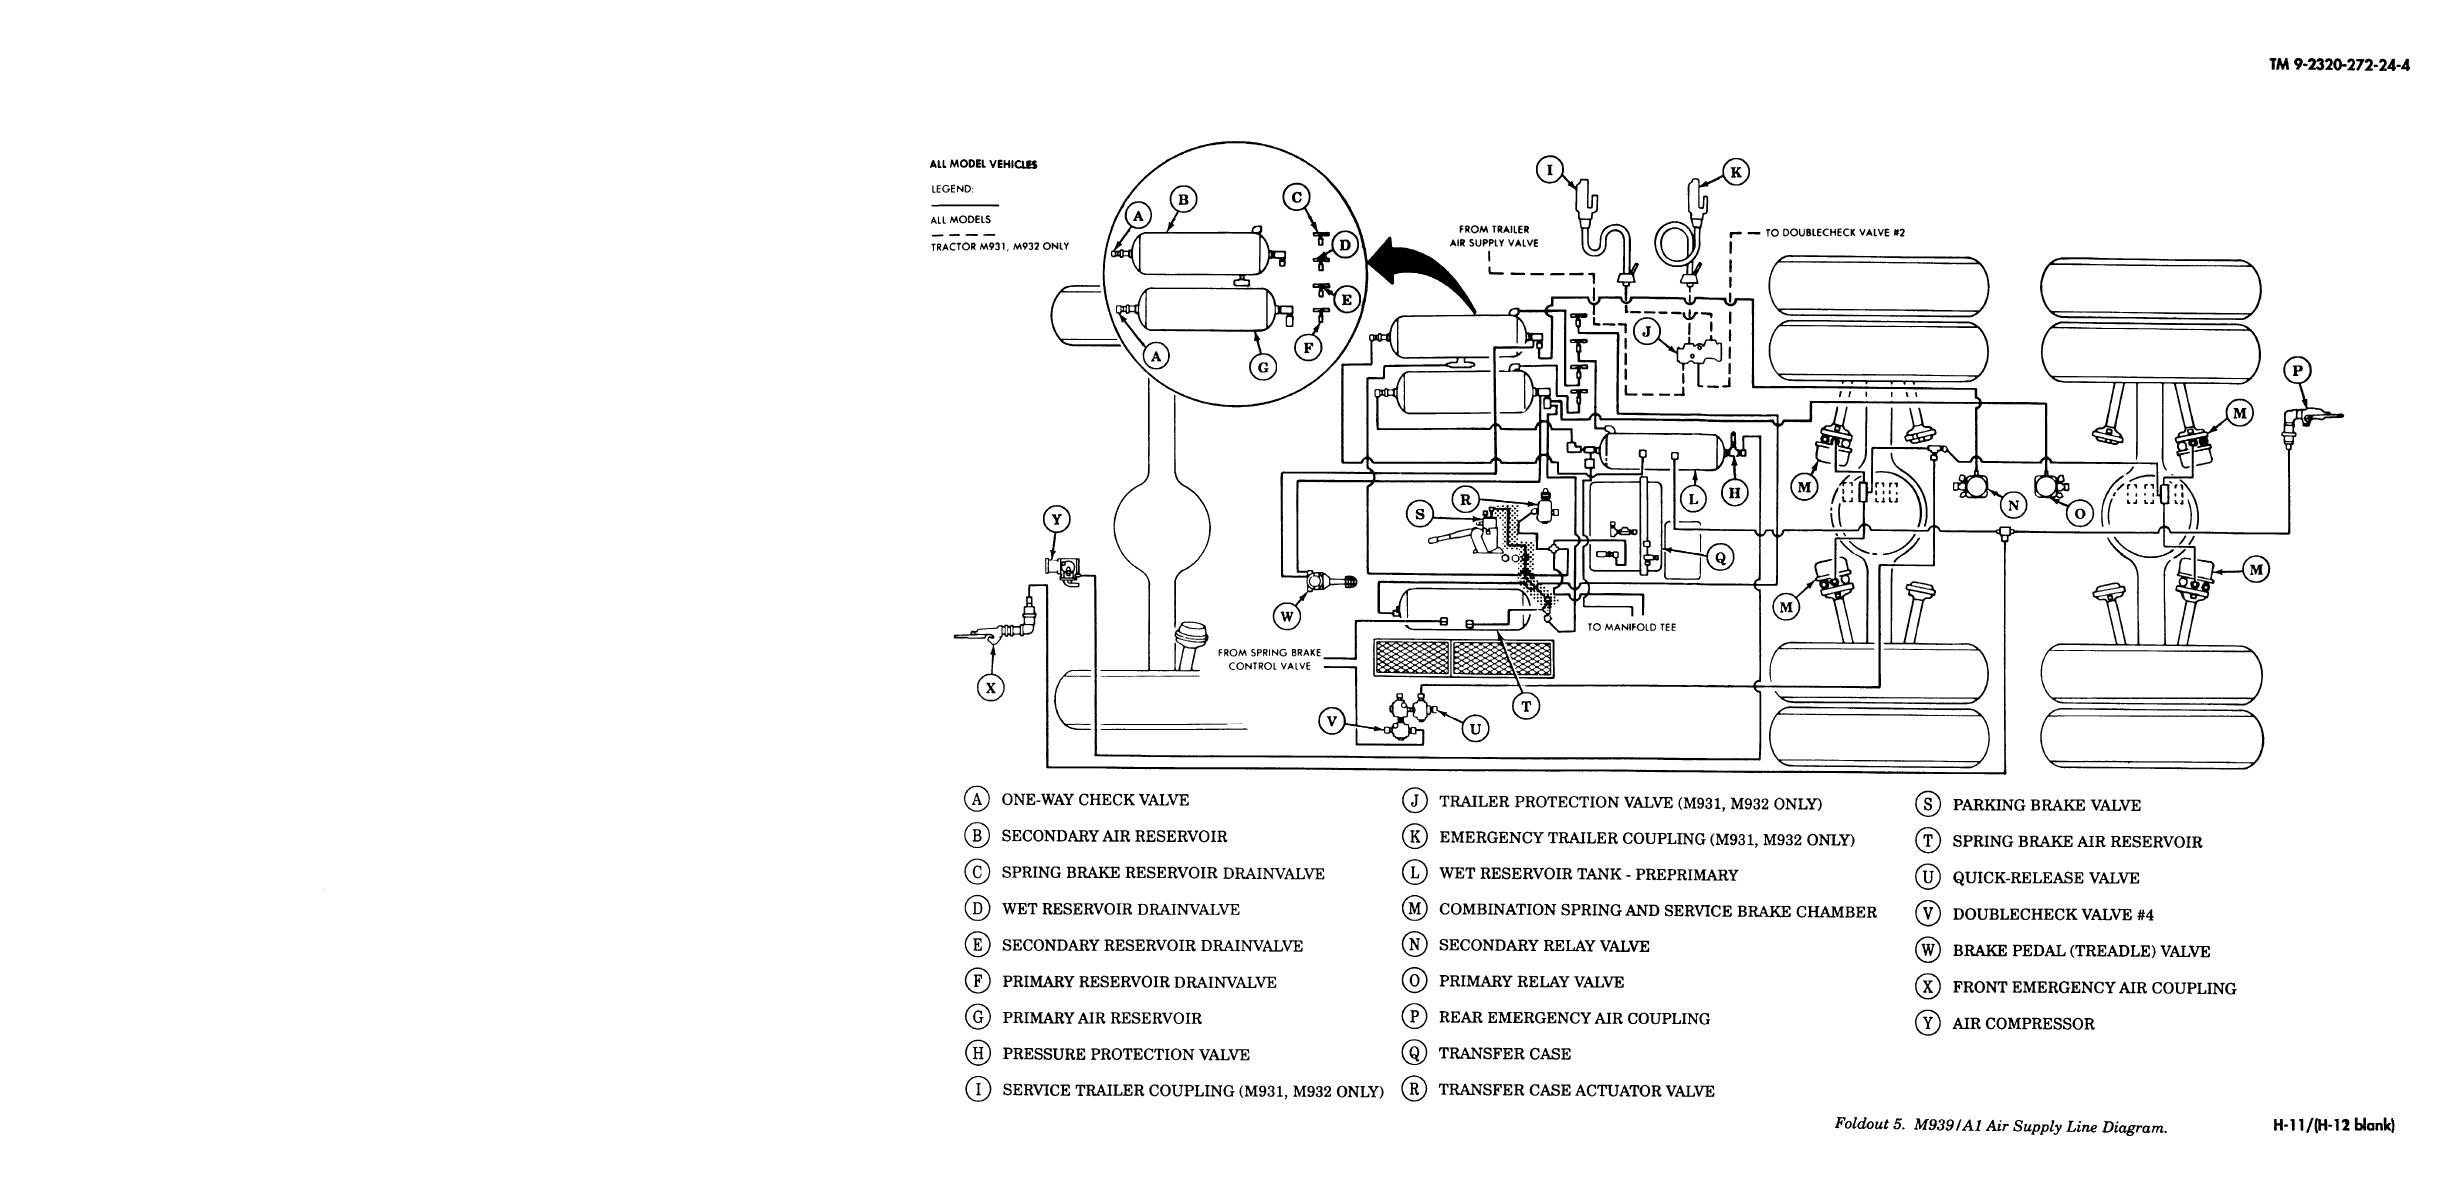 M1008 Wiring Diagram Electrical Glow Plug M939 Schematic Cucv Complete